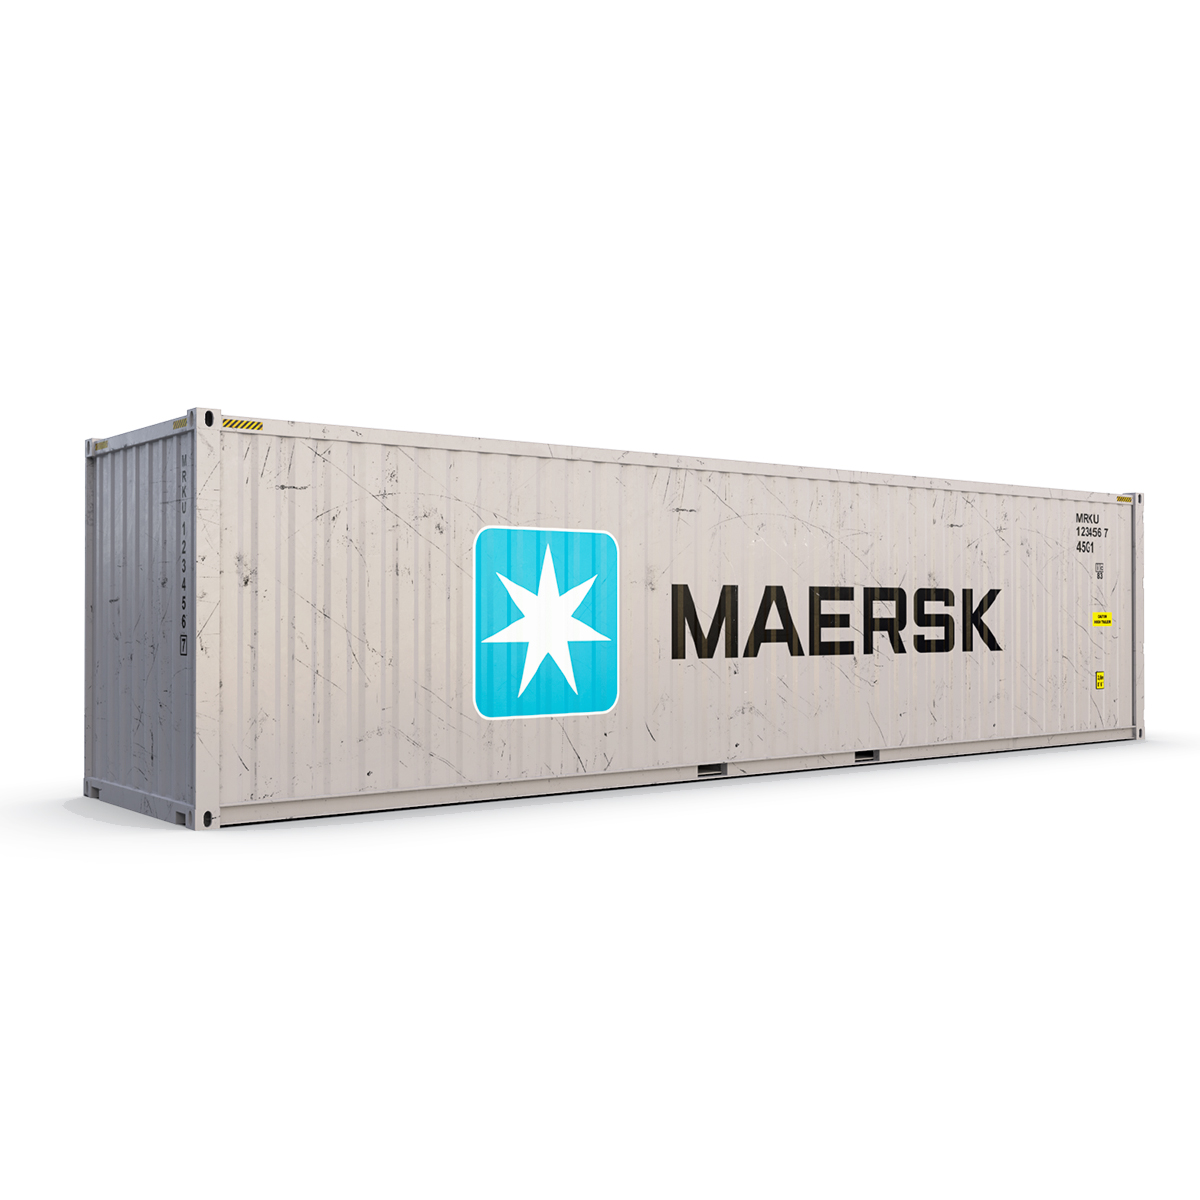 40 feet high cube maersk shipping container 3d model max fbx ma mb texture obj 278428